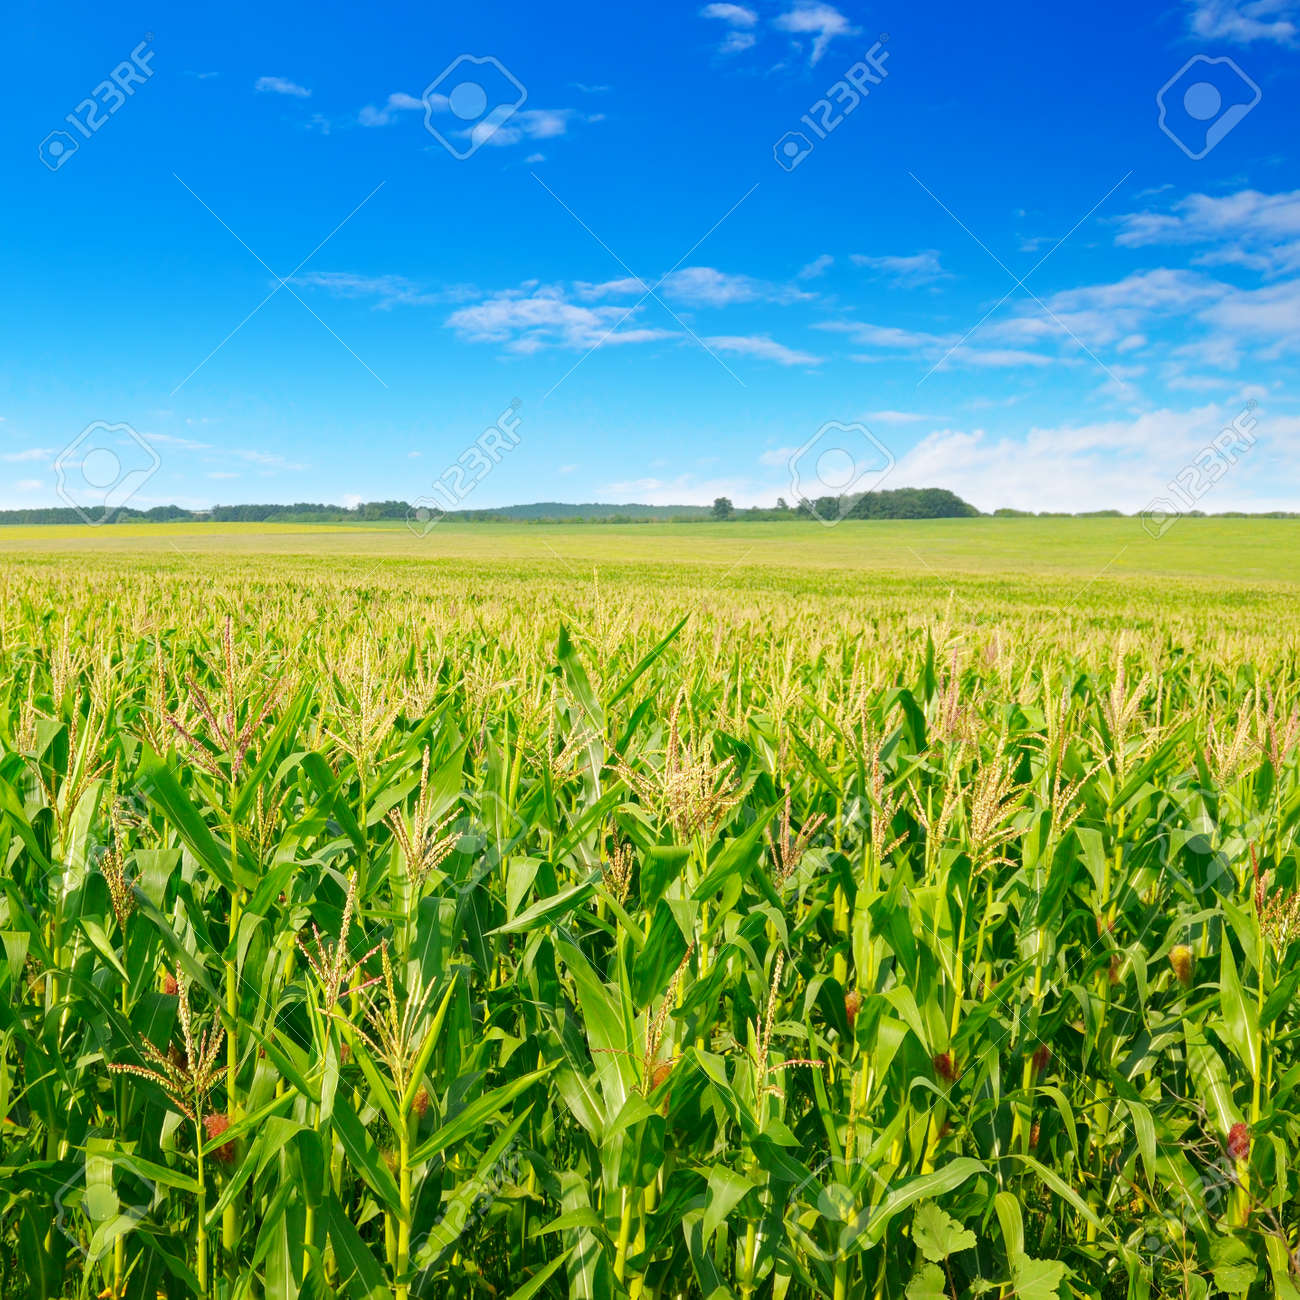 Green corn field and beautiful clouds in the blue sky. Agricultural landscape. - 157055330